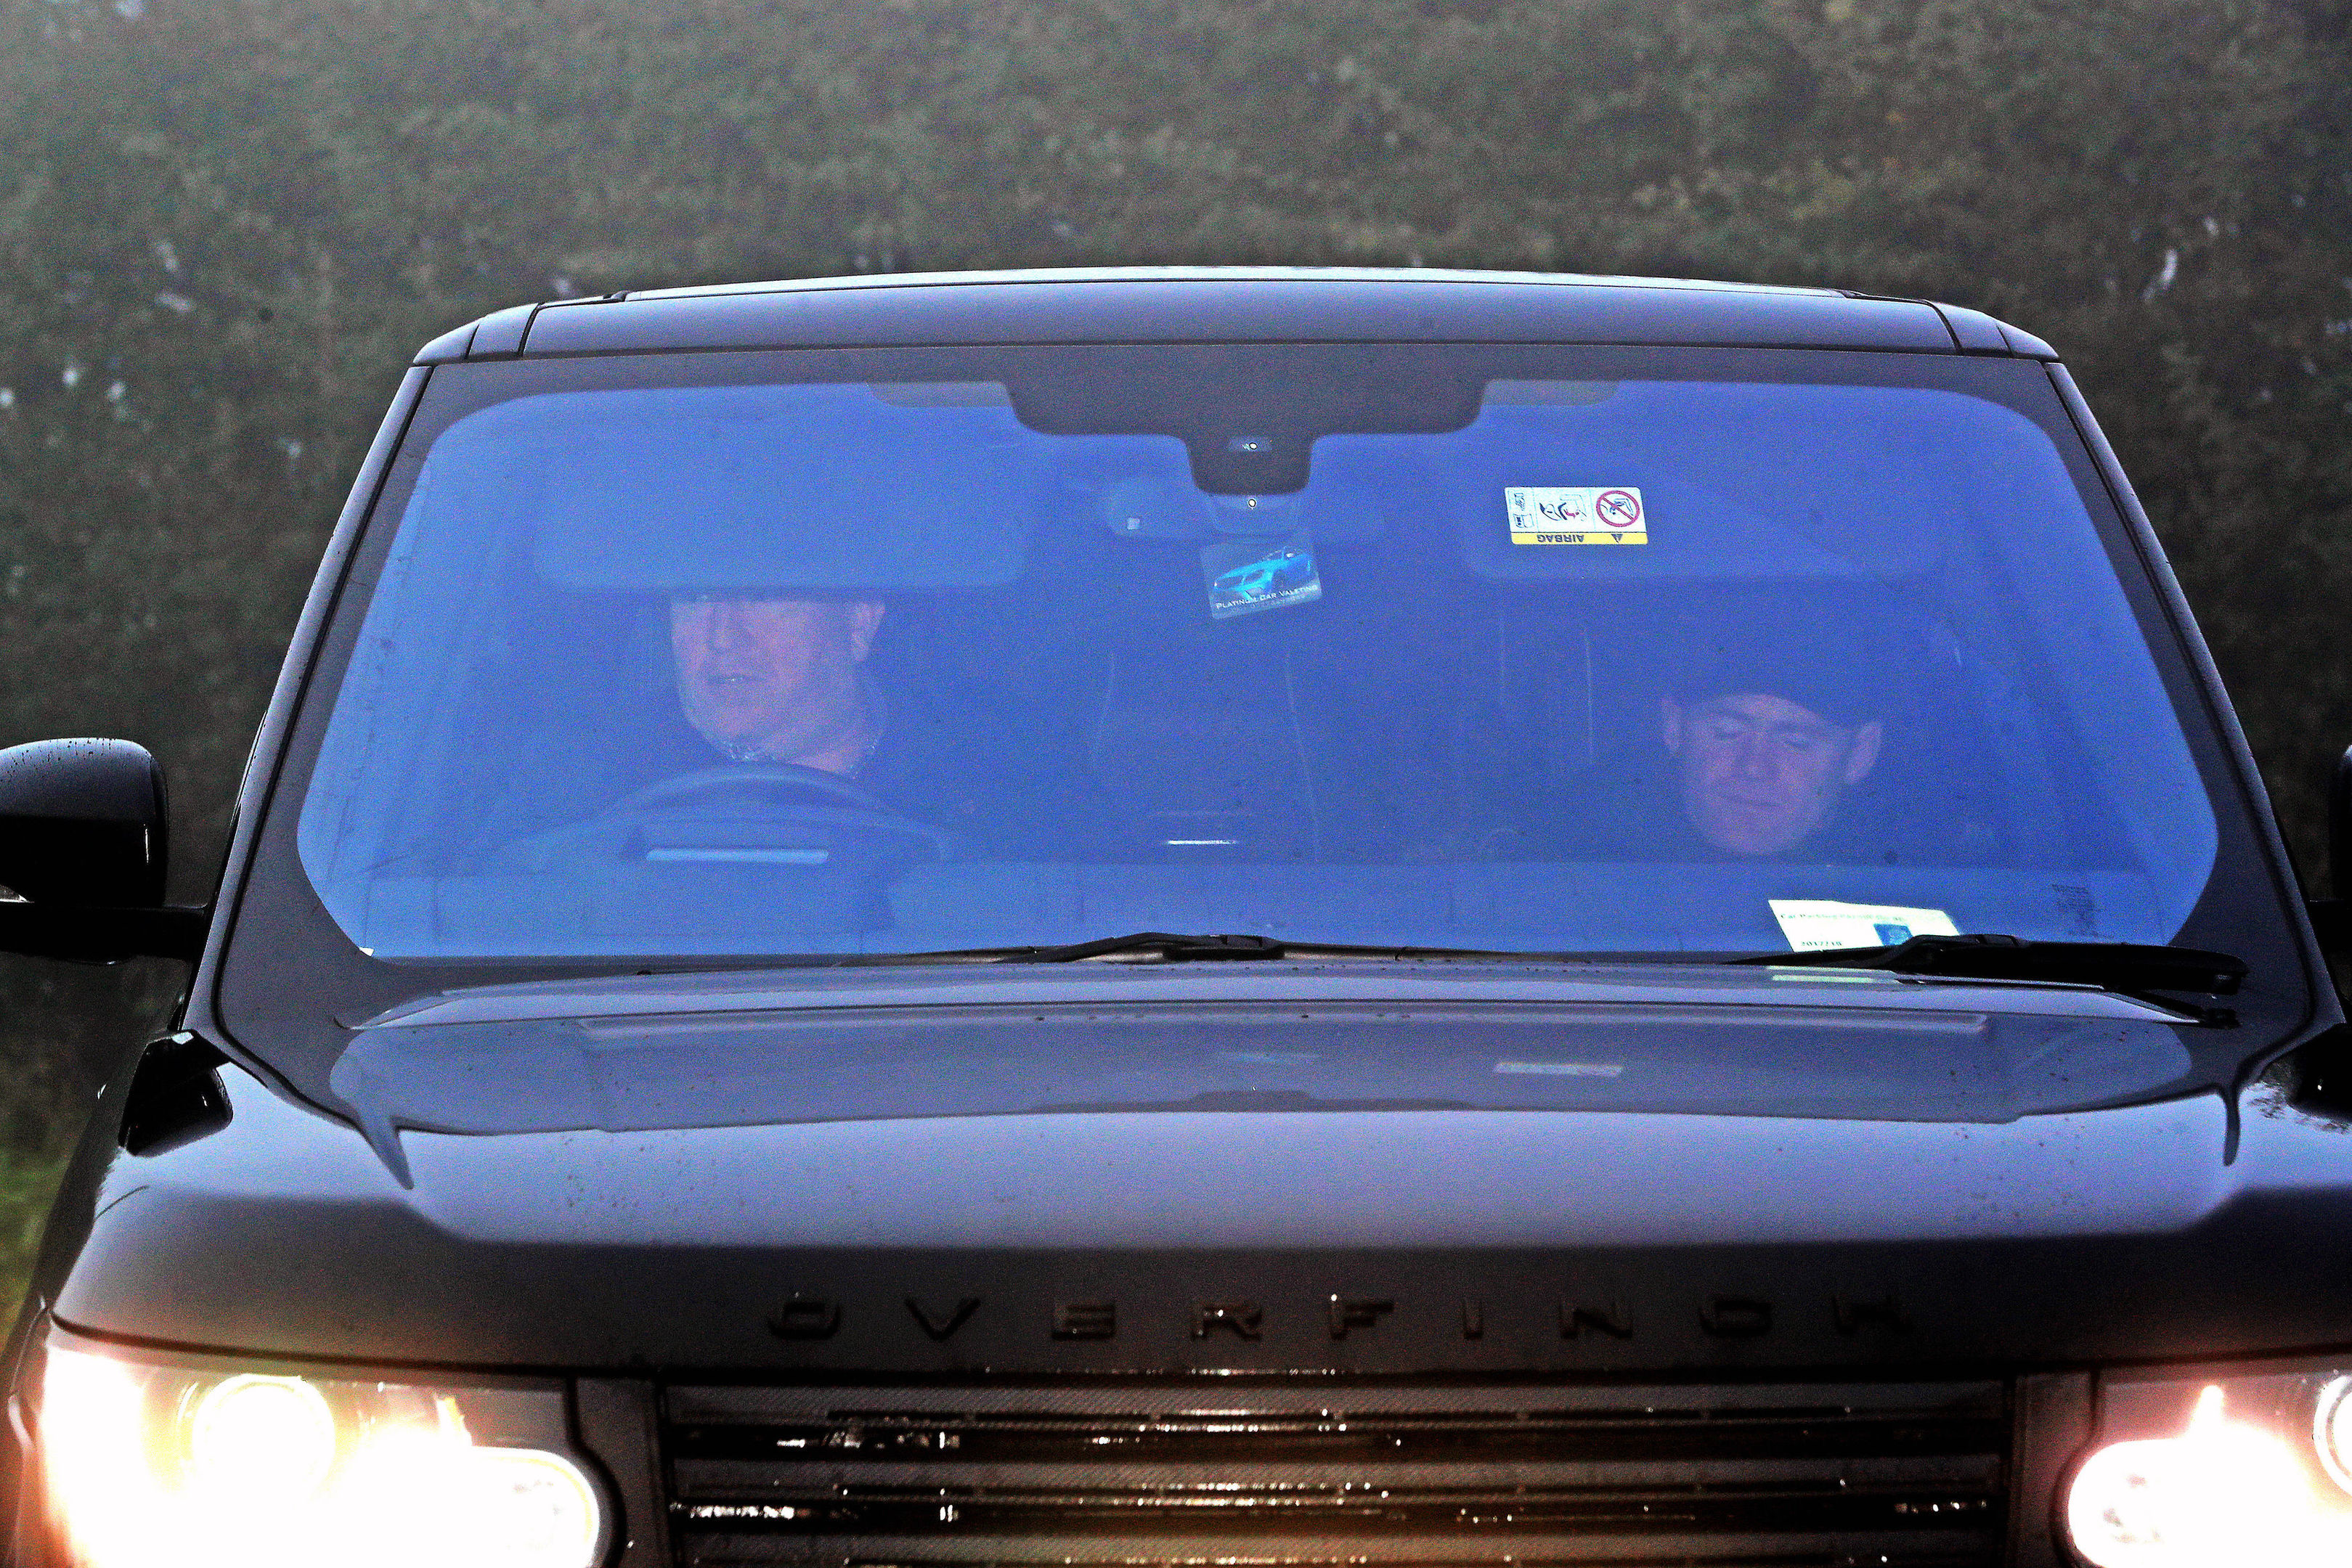 Wayne Rooney is driven in to Everton's Finch Farm Training Ground, after being banned from driving for two years and ordered to perform 100 hours of unpaid work as part of a 12-month community order. (Peter Byrne/PA Wire)